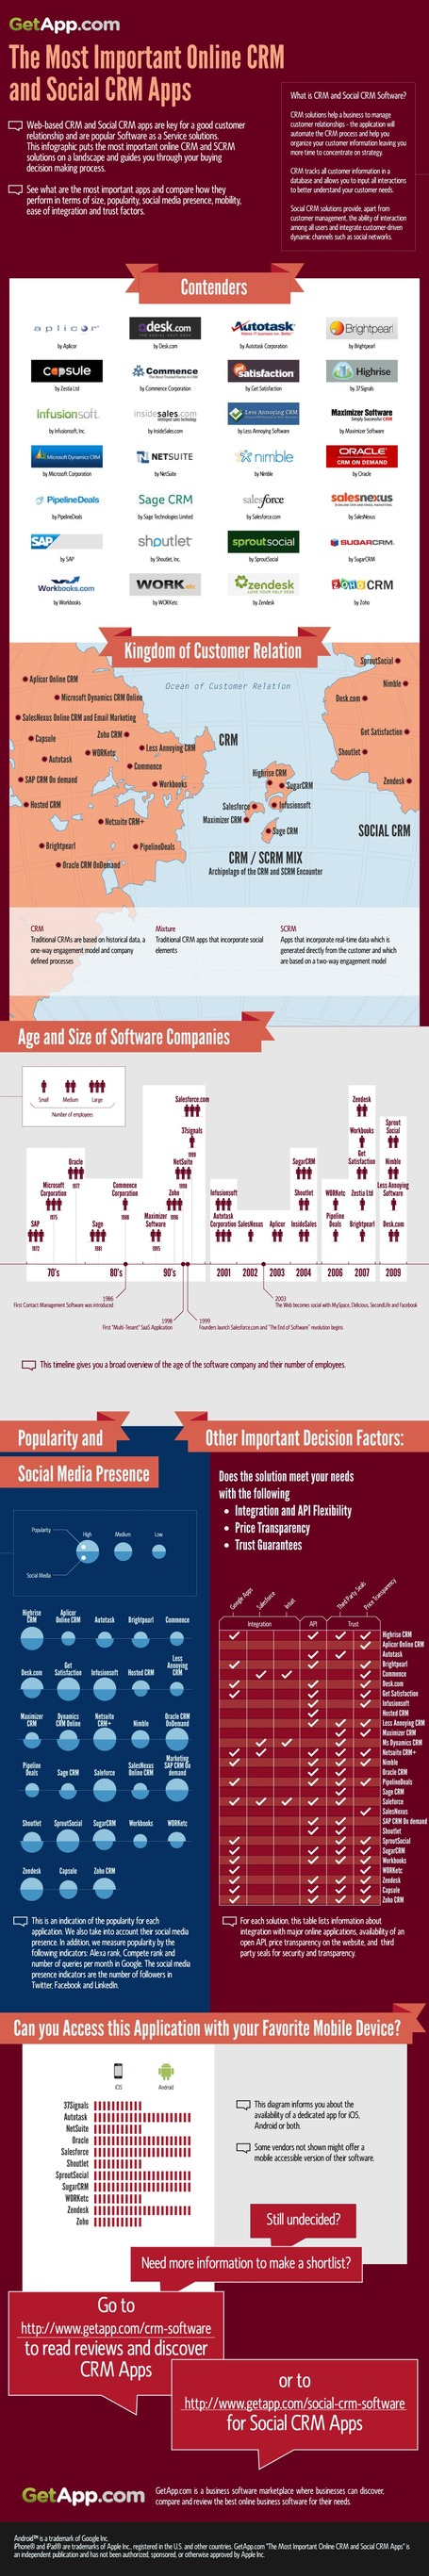 Top 50+ Best List of Online CRM & Social CRM Apps | All Infographics | BI Revolution | Scoop.it